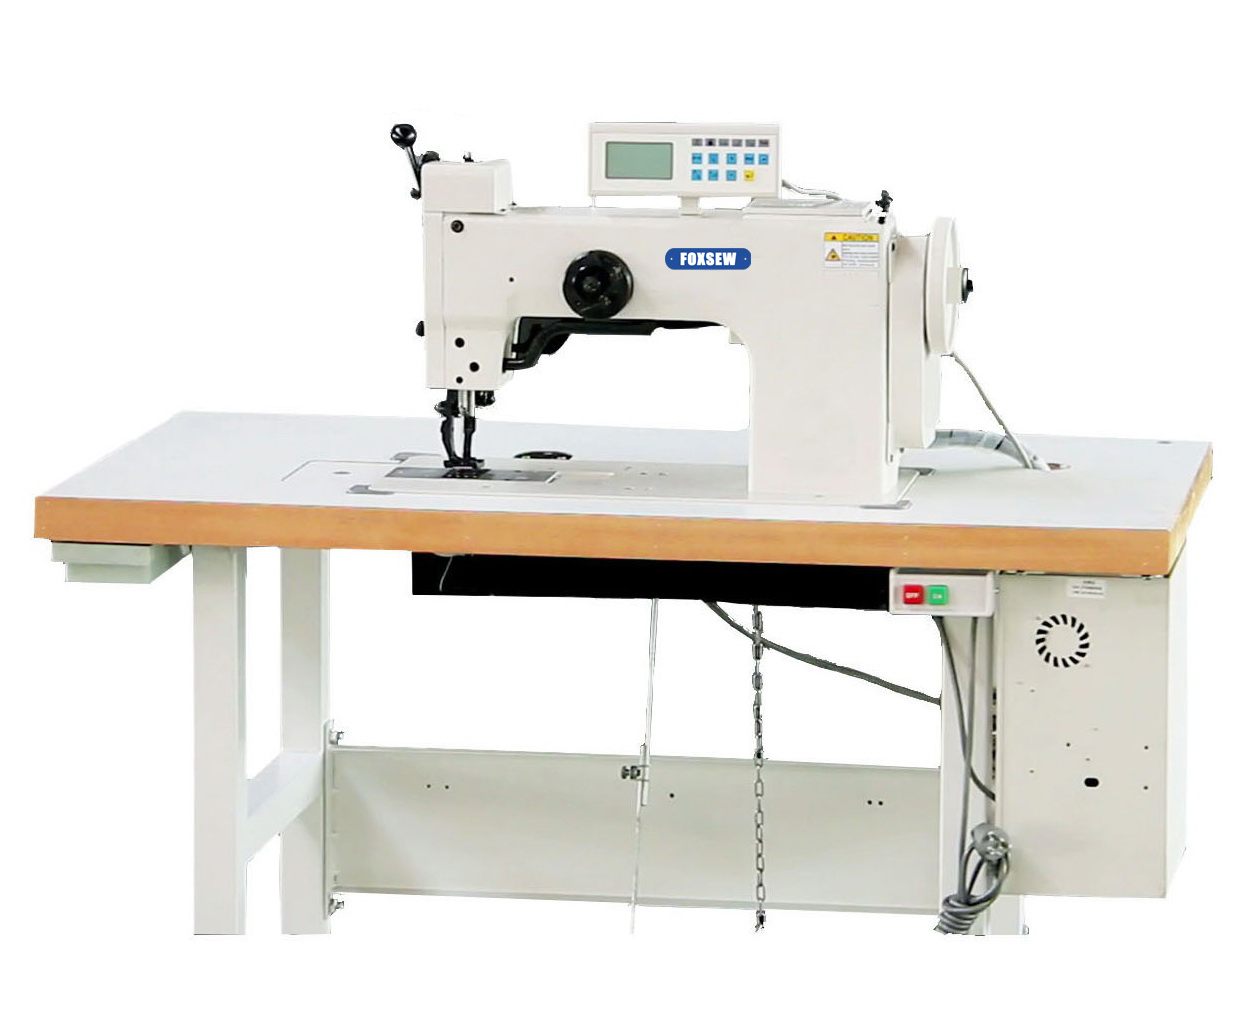 KD-204-106S Single Needle Heavy Duty Thick Thread Ornamental Decorative Stitch Sewing Machine